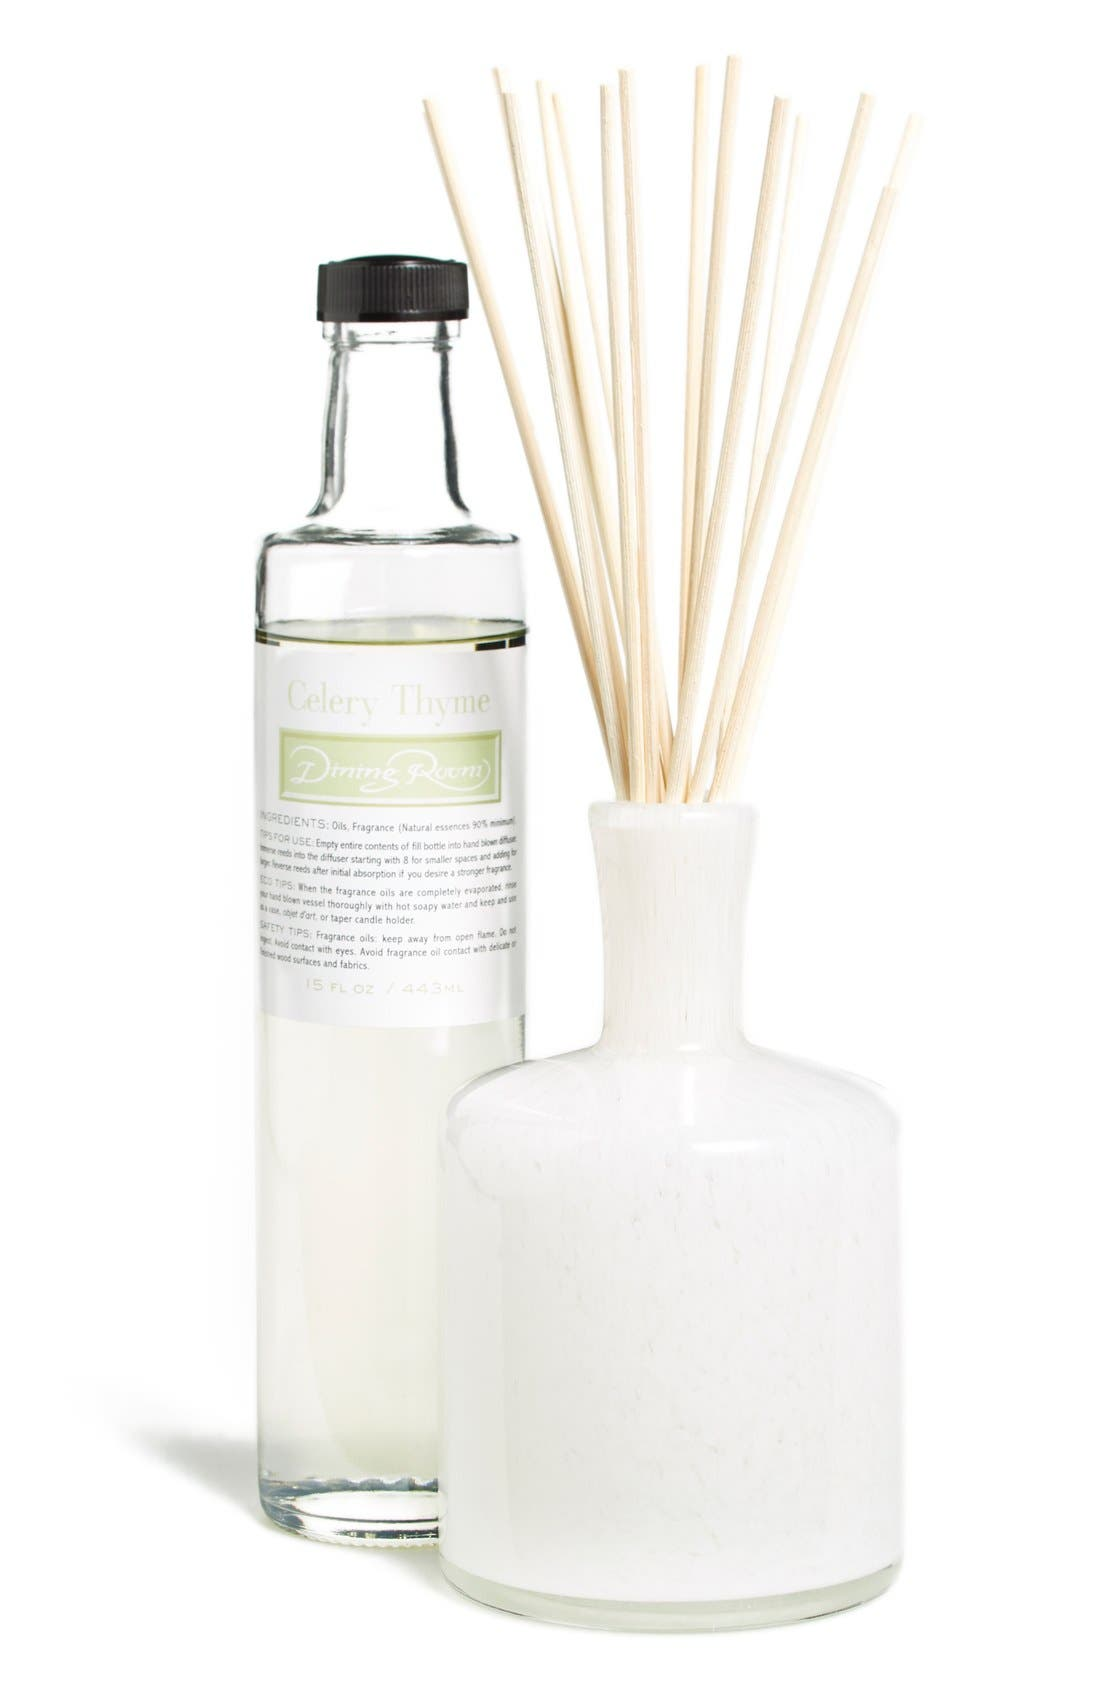 Lafco Celery Thyme Dining Room Fragrance Diffuser Nordstrom